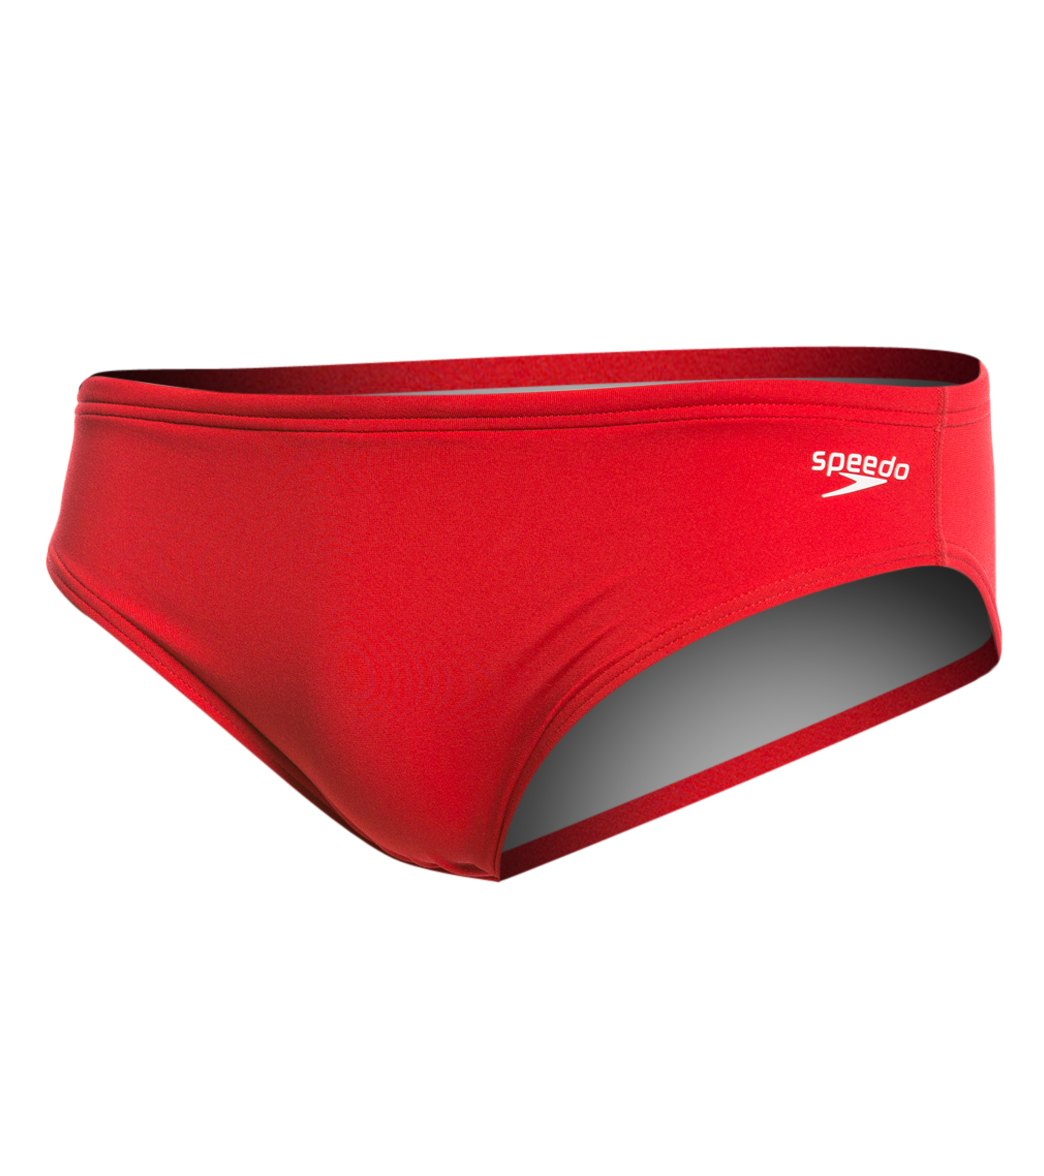 c49ccd8f1be Speedo Men s The One Brief Swimsuit at SwimOutlet.com